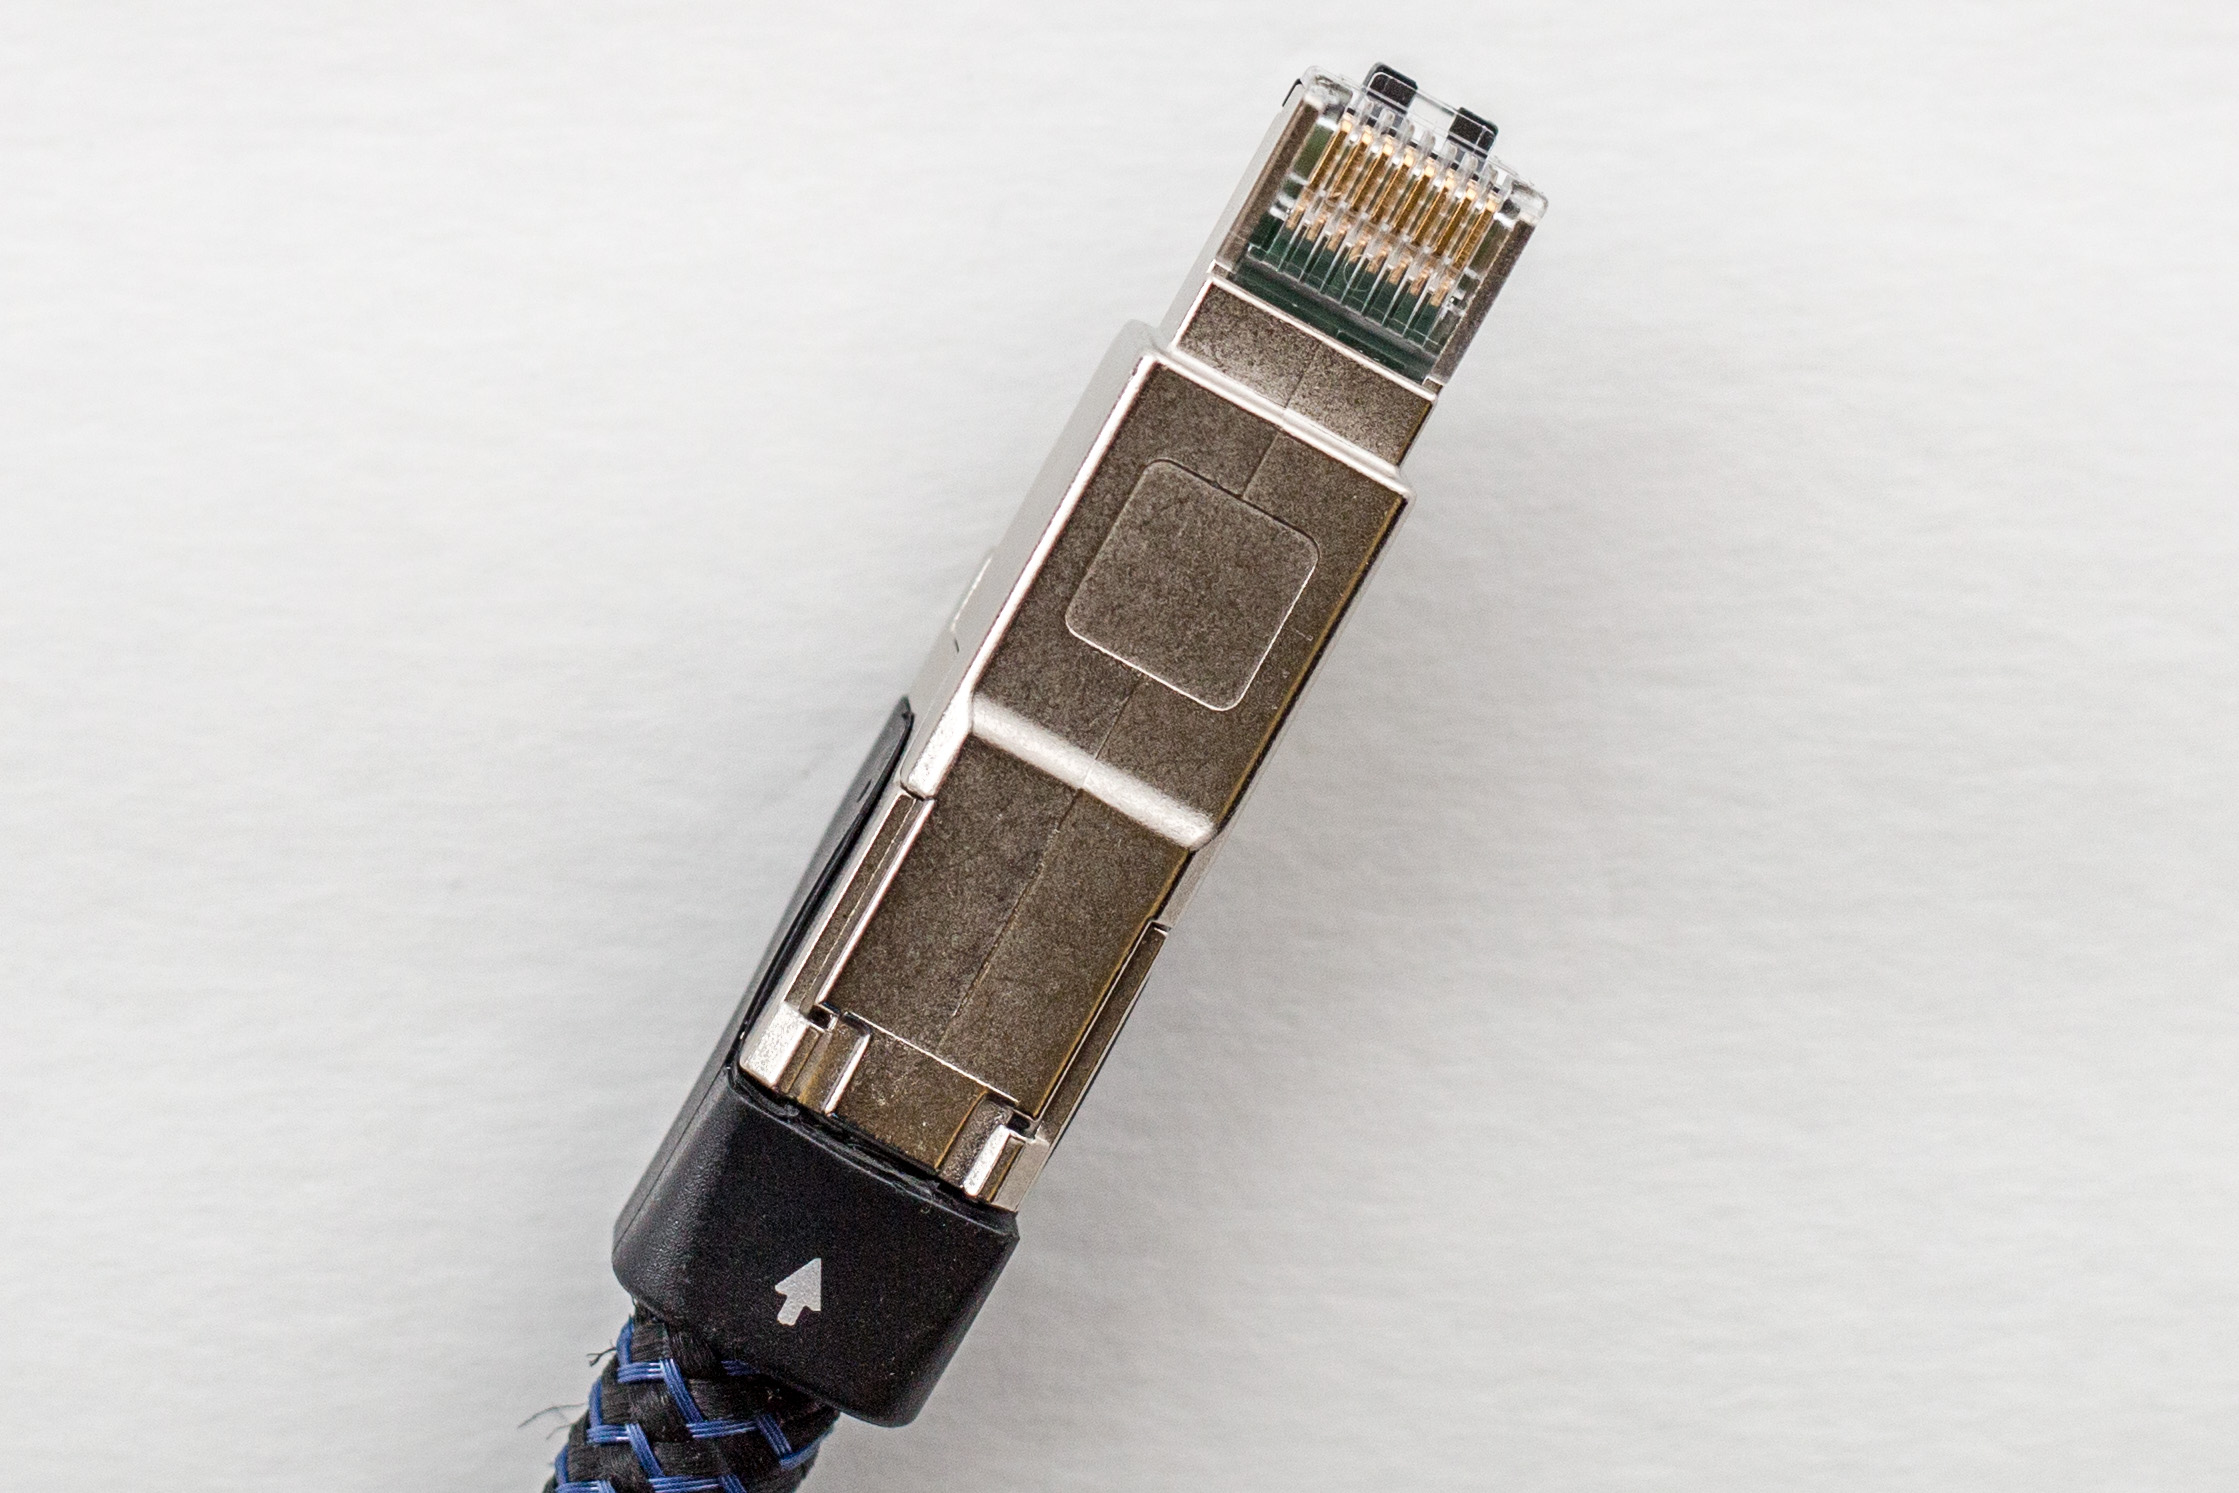 The Audiophiles Dilemma Strangers Cant Identify 340 Cables Wiring My Home For Ethernet Enlarge